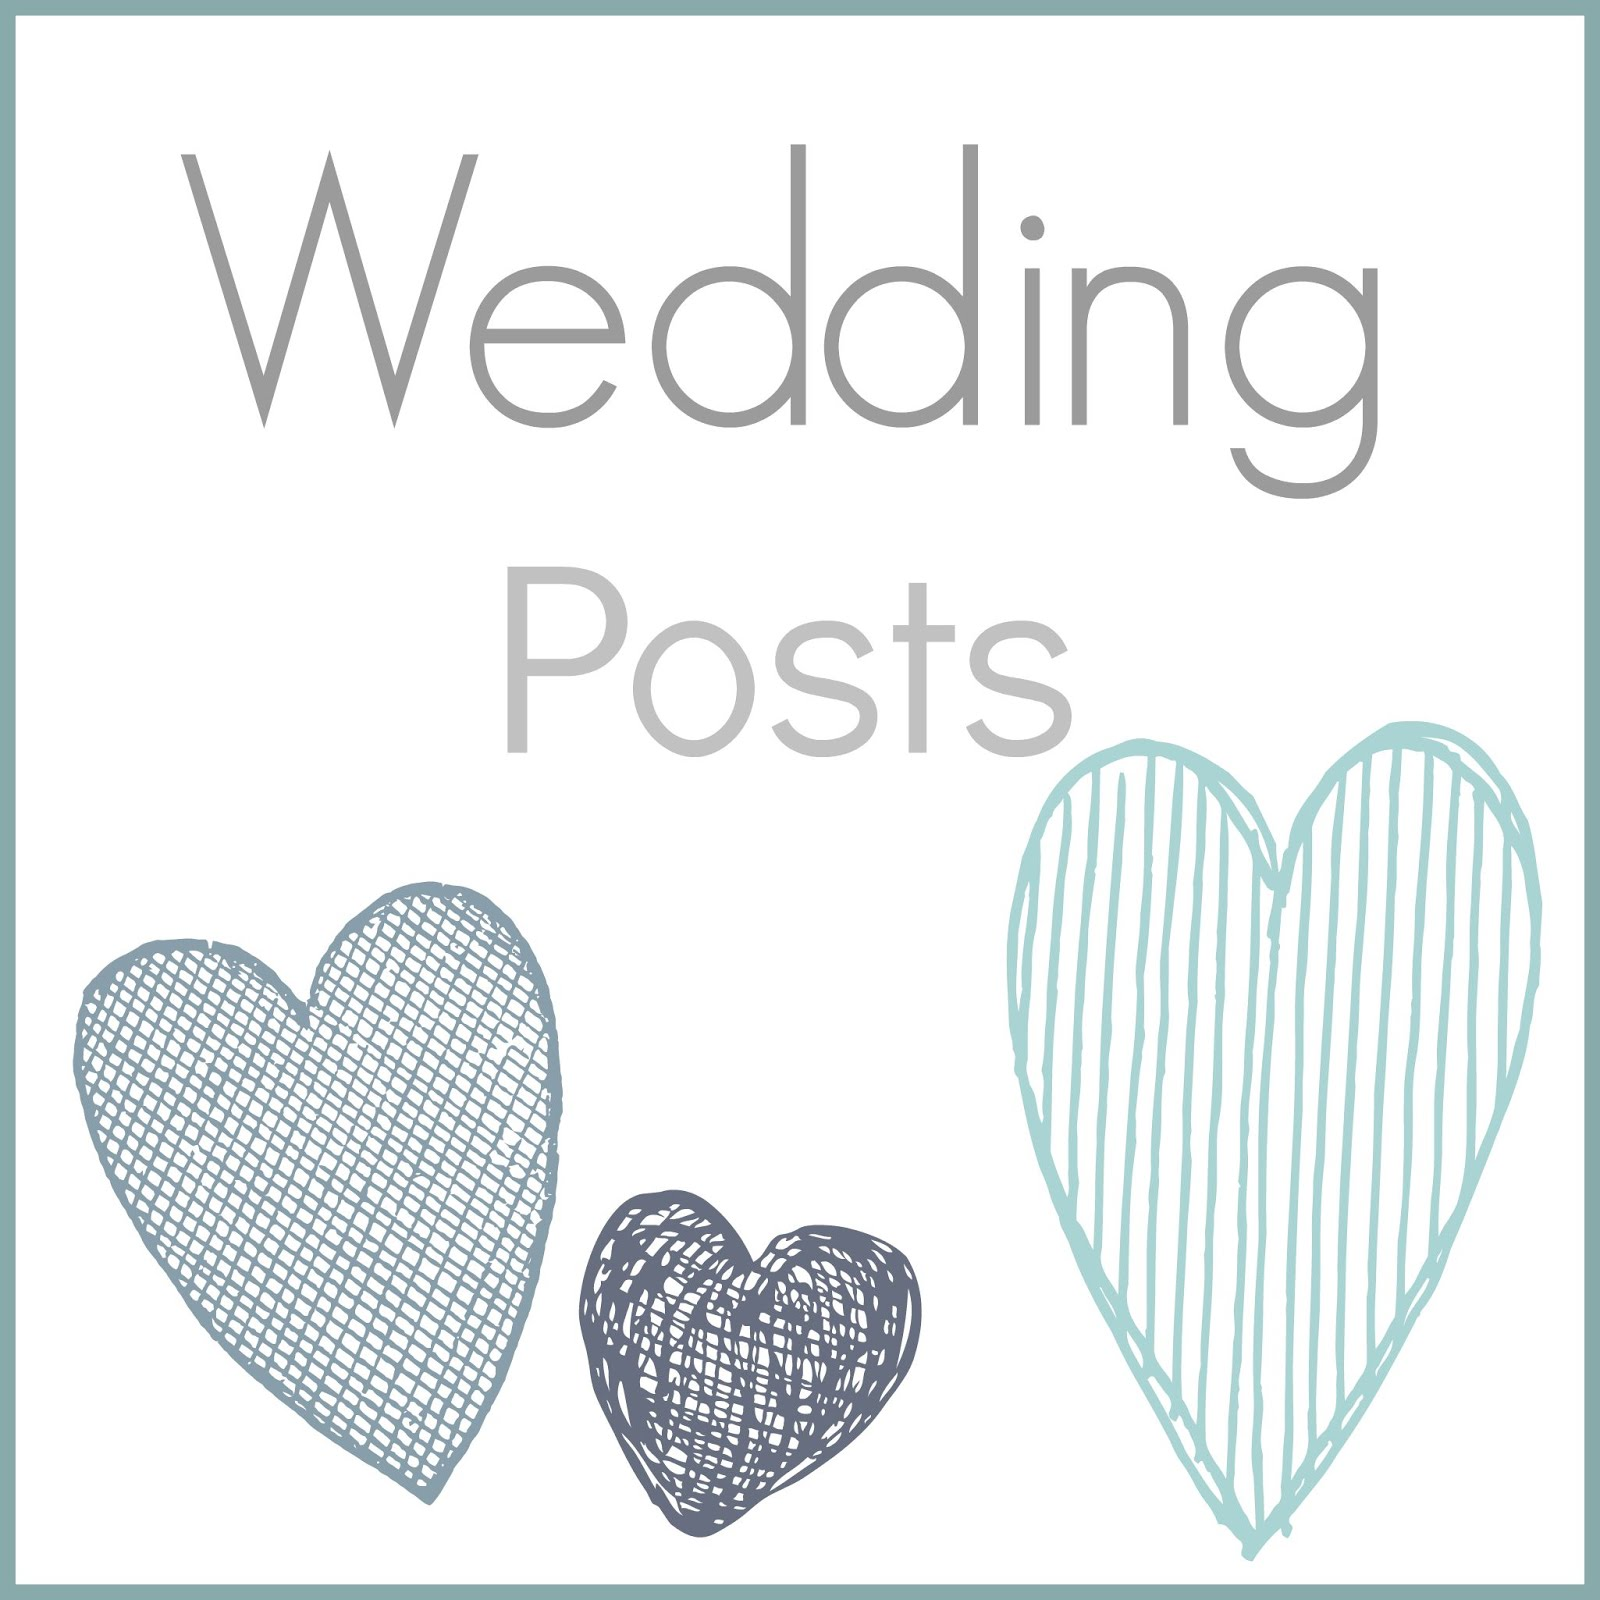 Wedding Posts